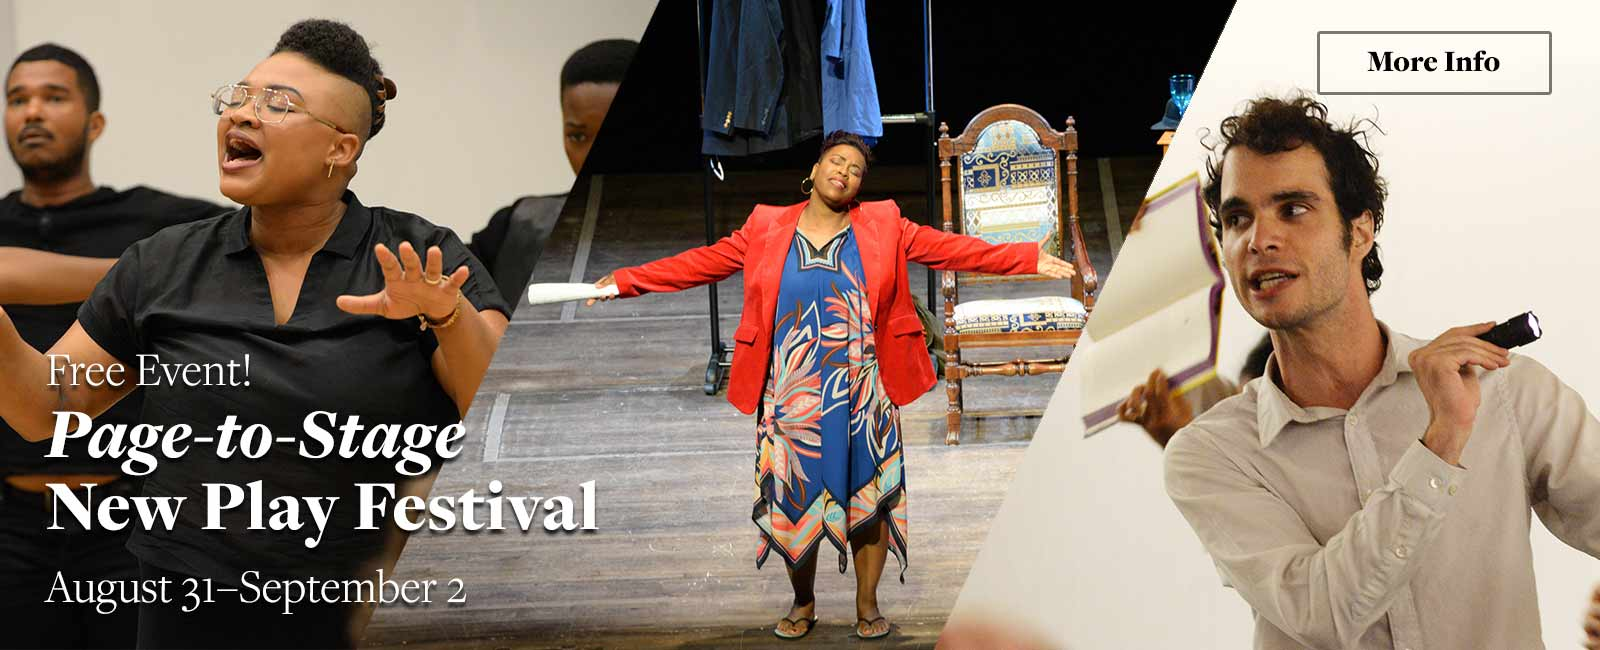 Page-to-Stage New Play Festival